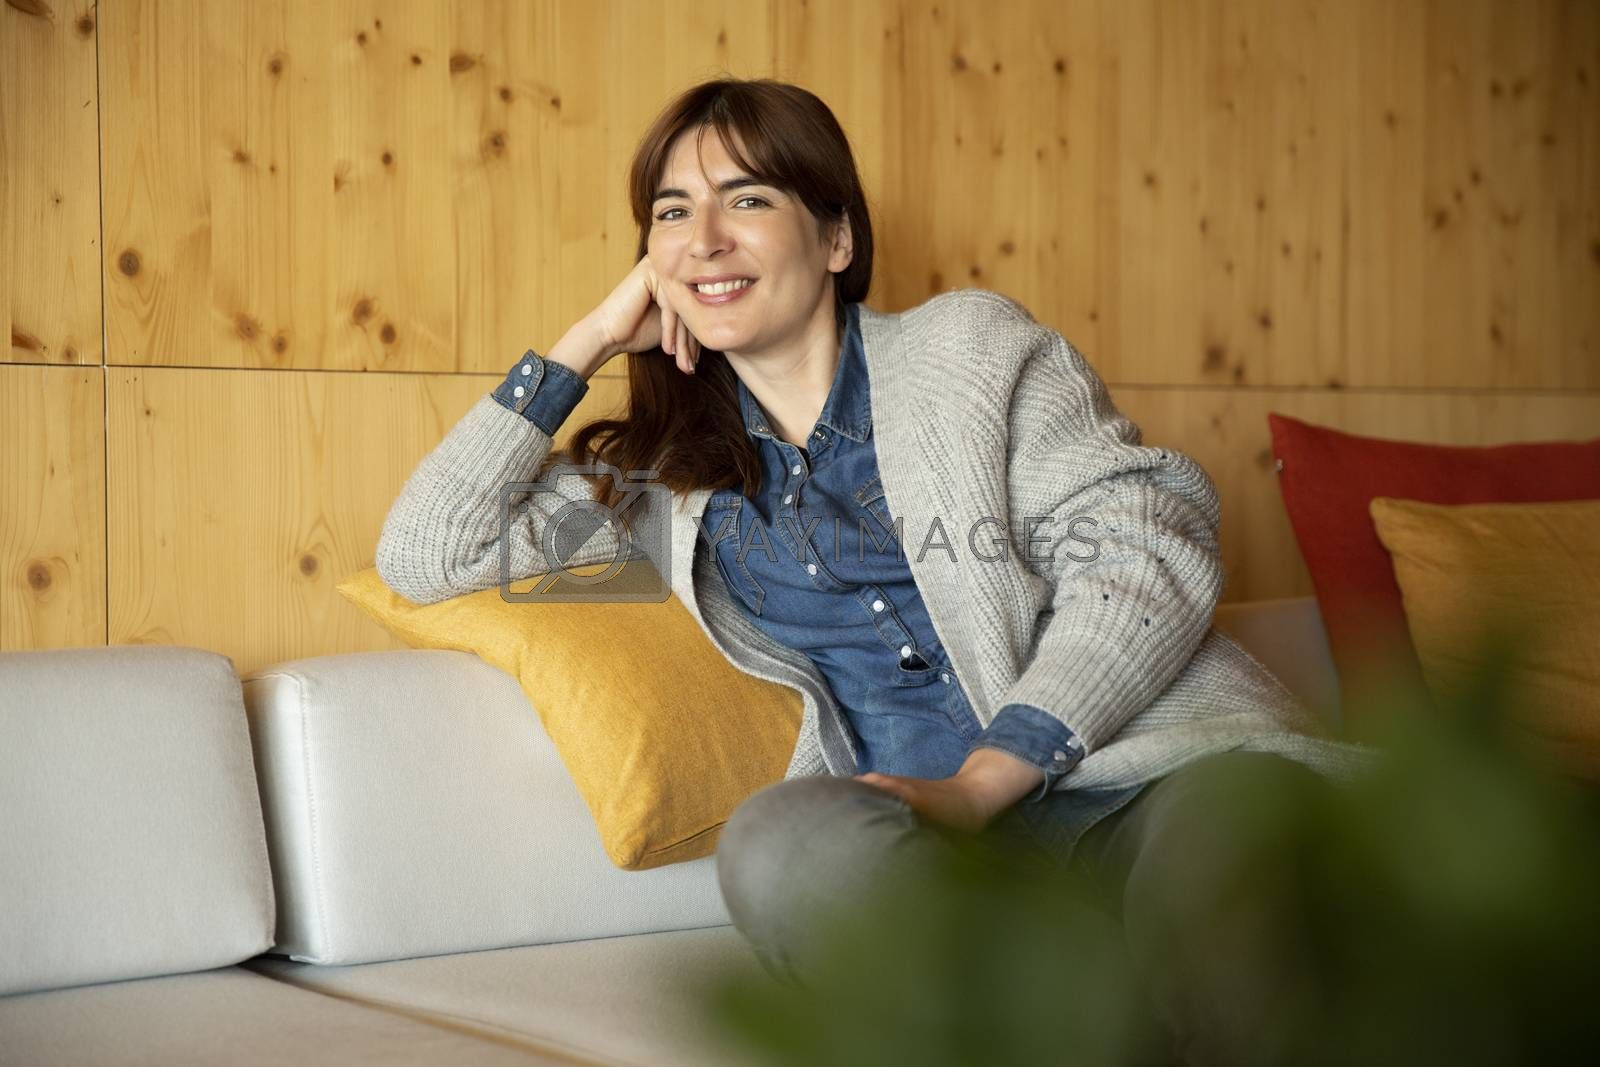 Beautiful woman sitting and relaxing